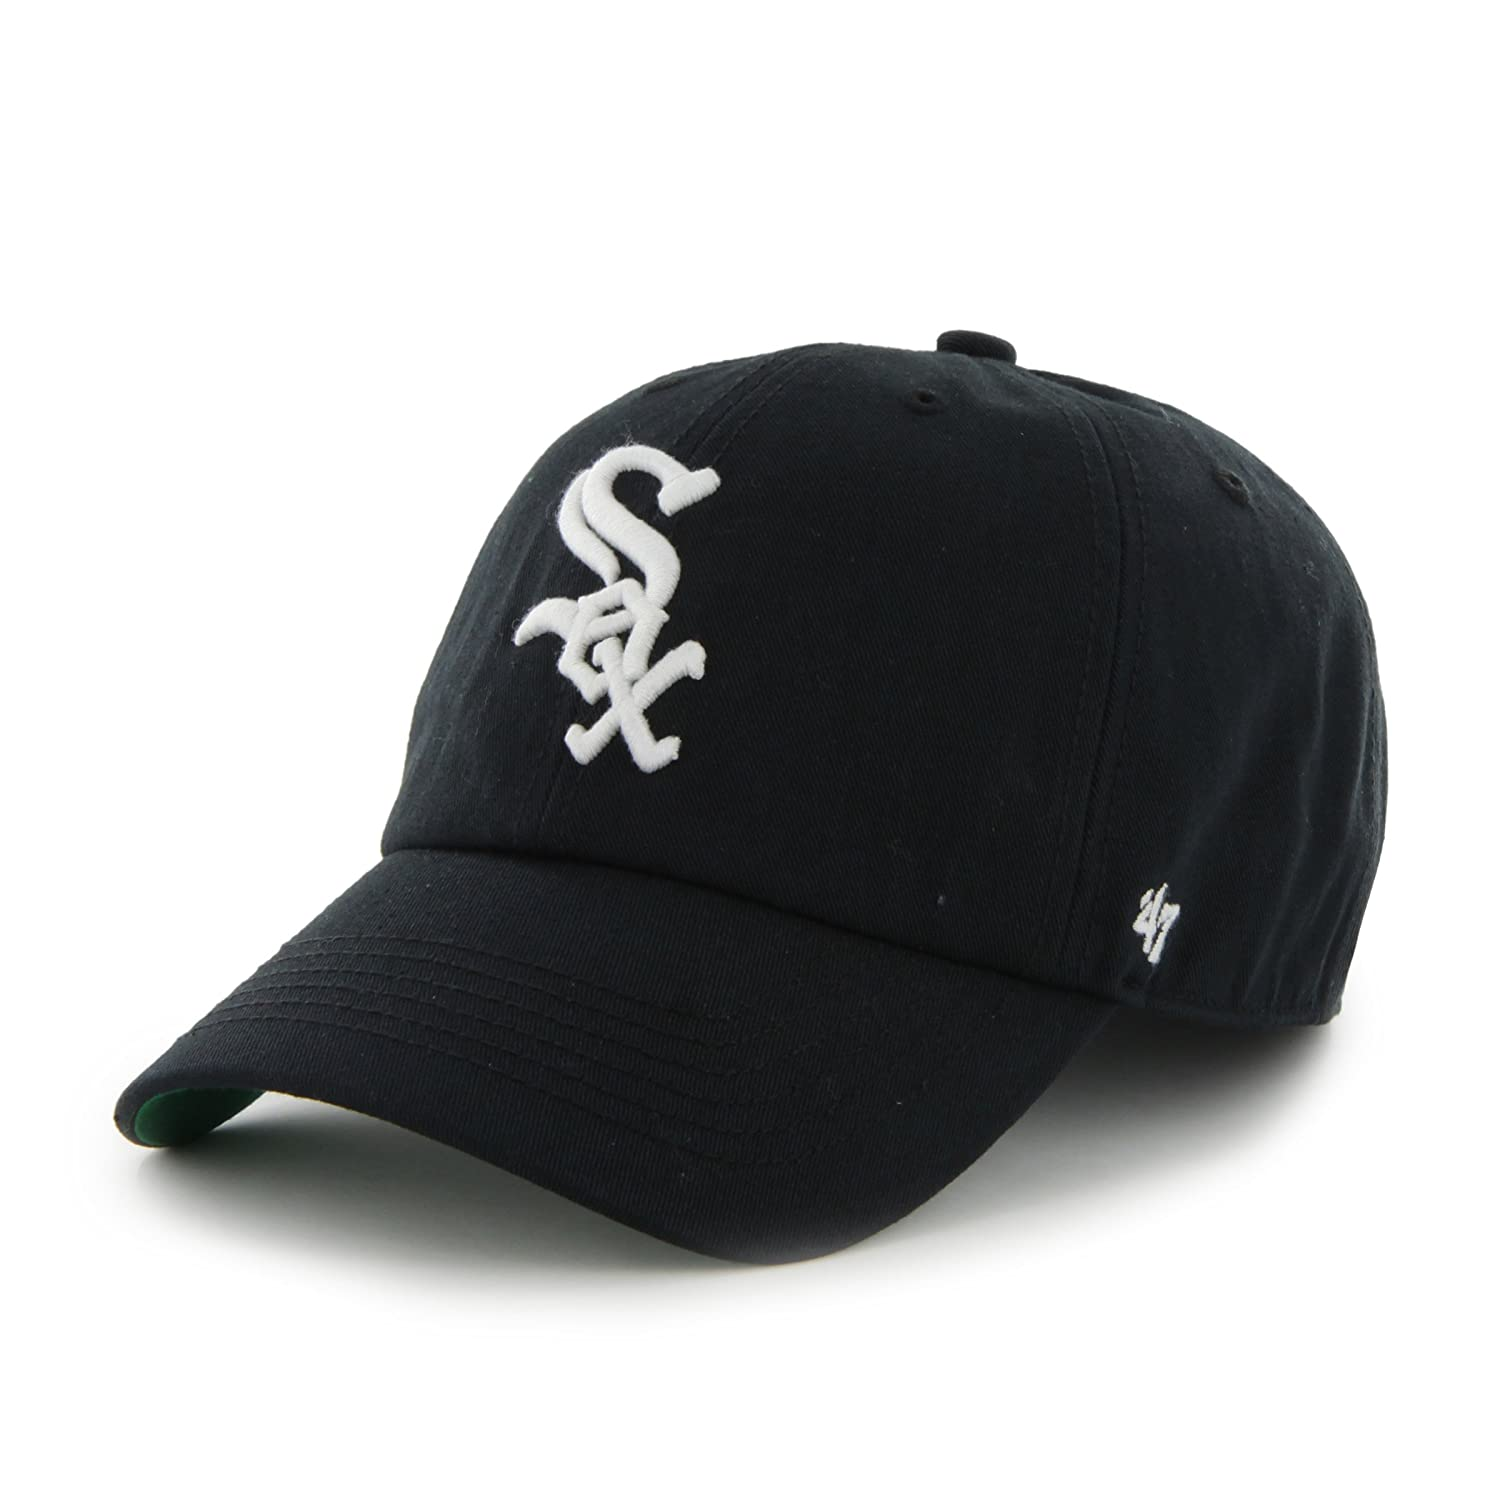 06e32039077 Amazon.com   MLB  47 Franchise Fitted Hat   Sports   Outdoors